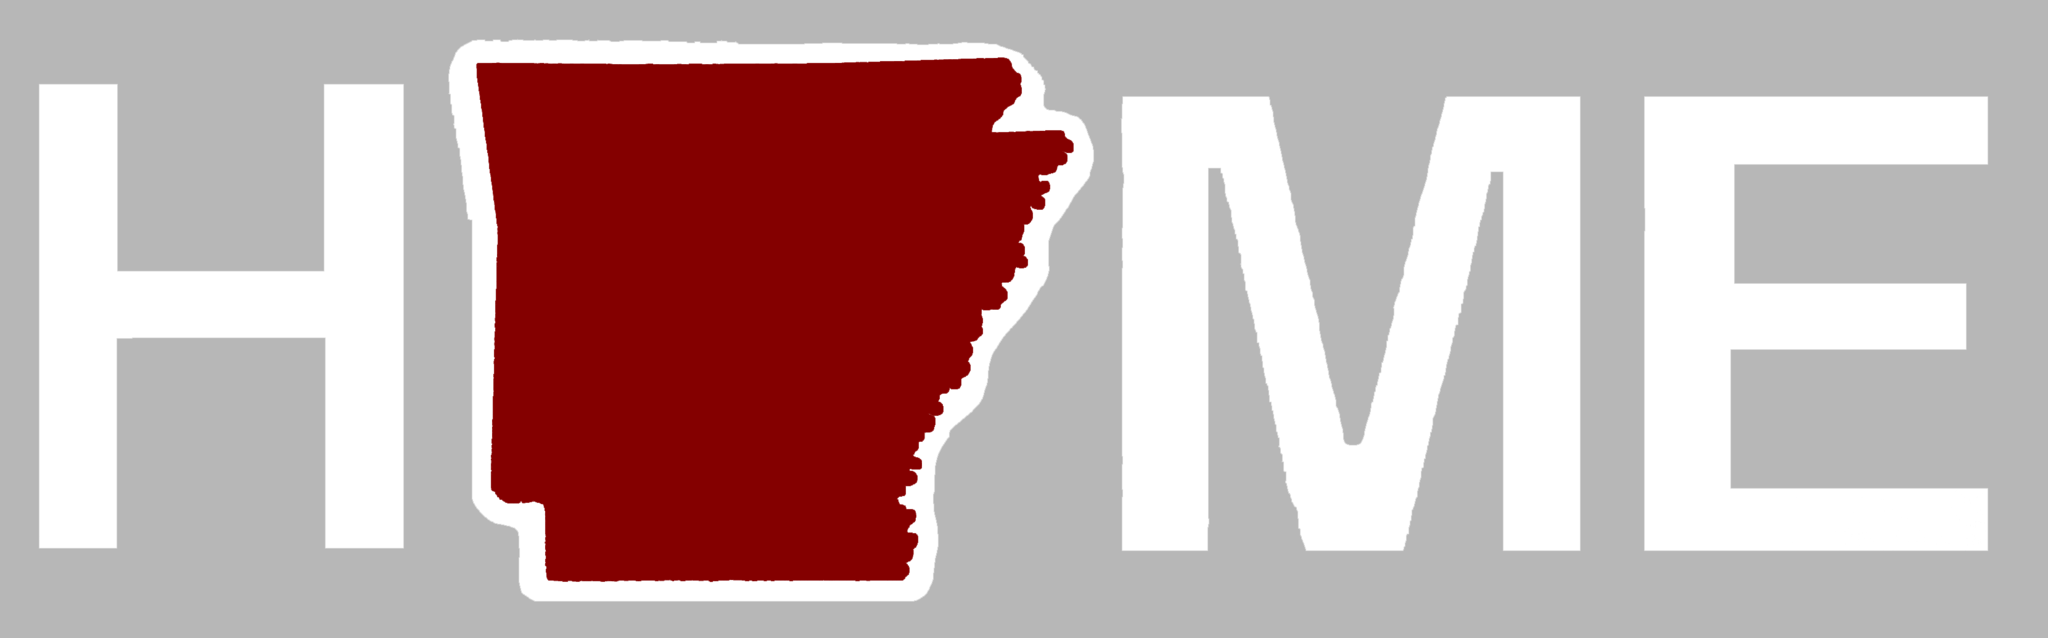 Arkansas Sticker | Red